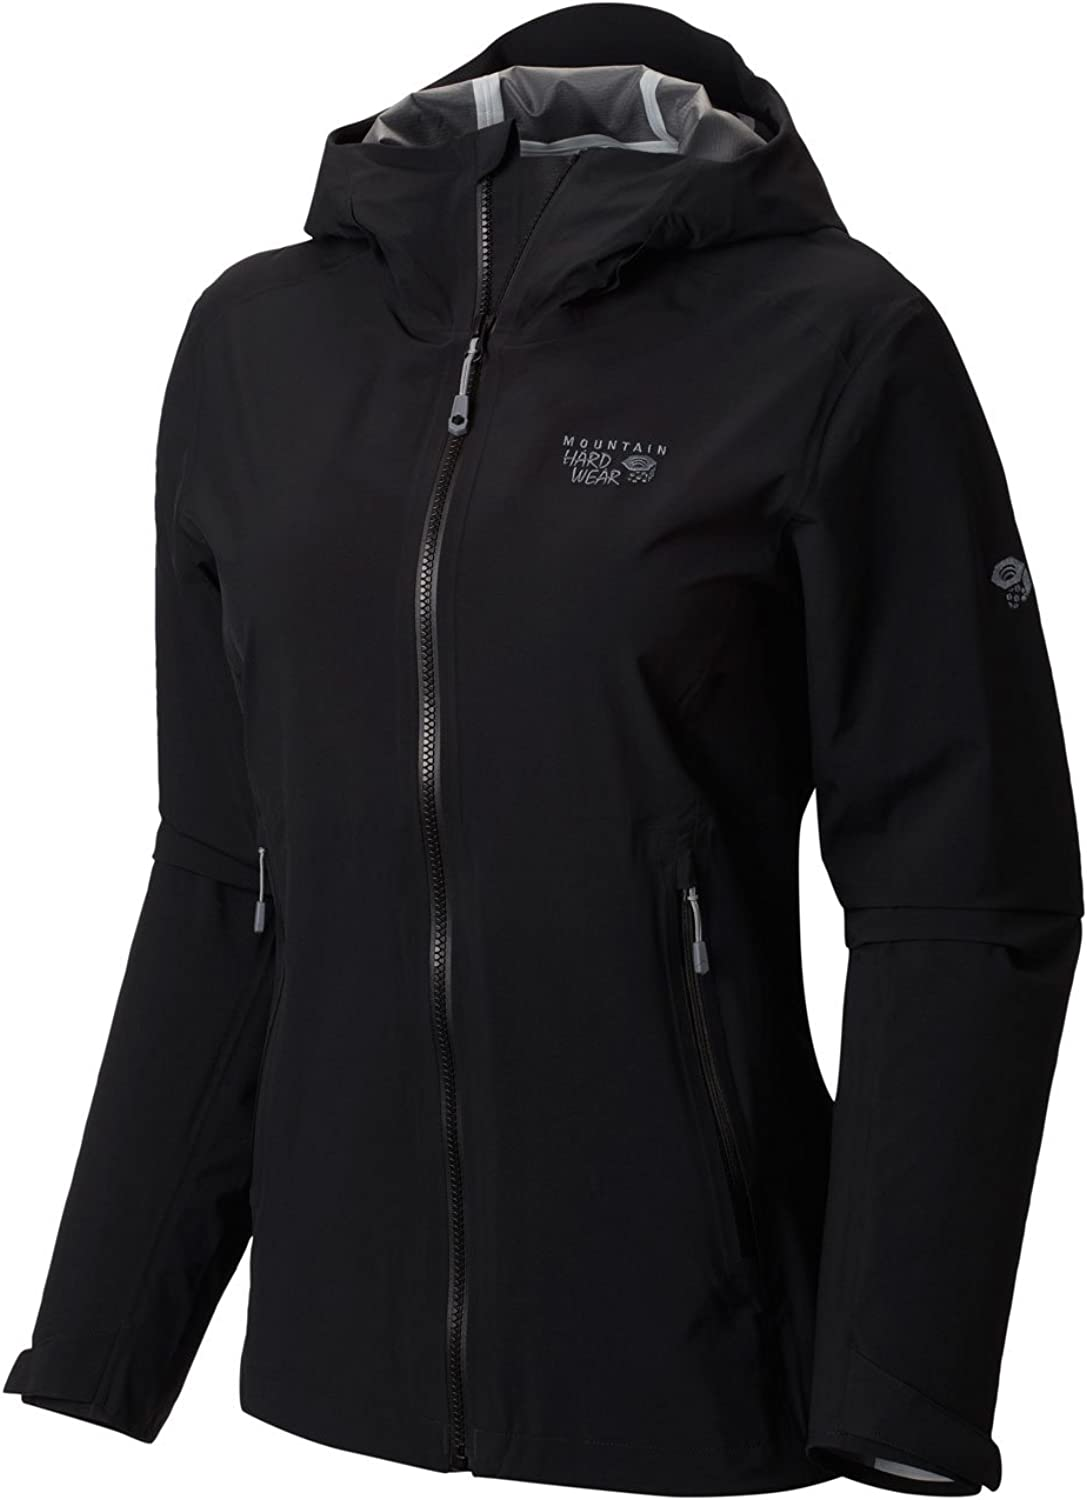 Mountain Hardwear Stretch Ozonic Jacket  Women's Black XLarge